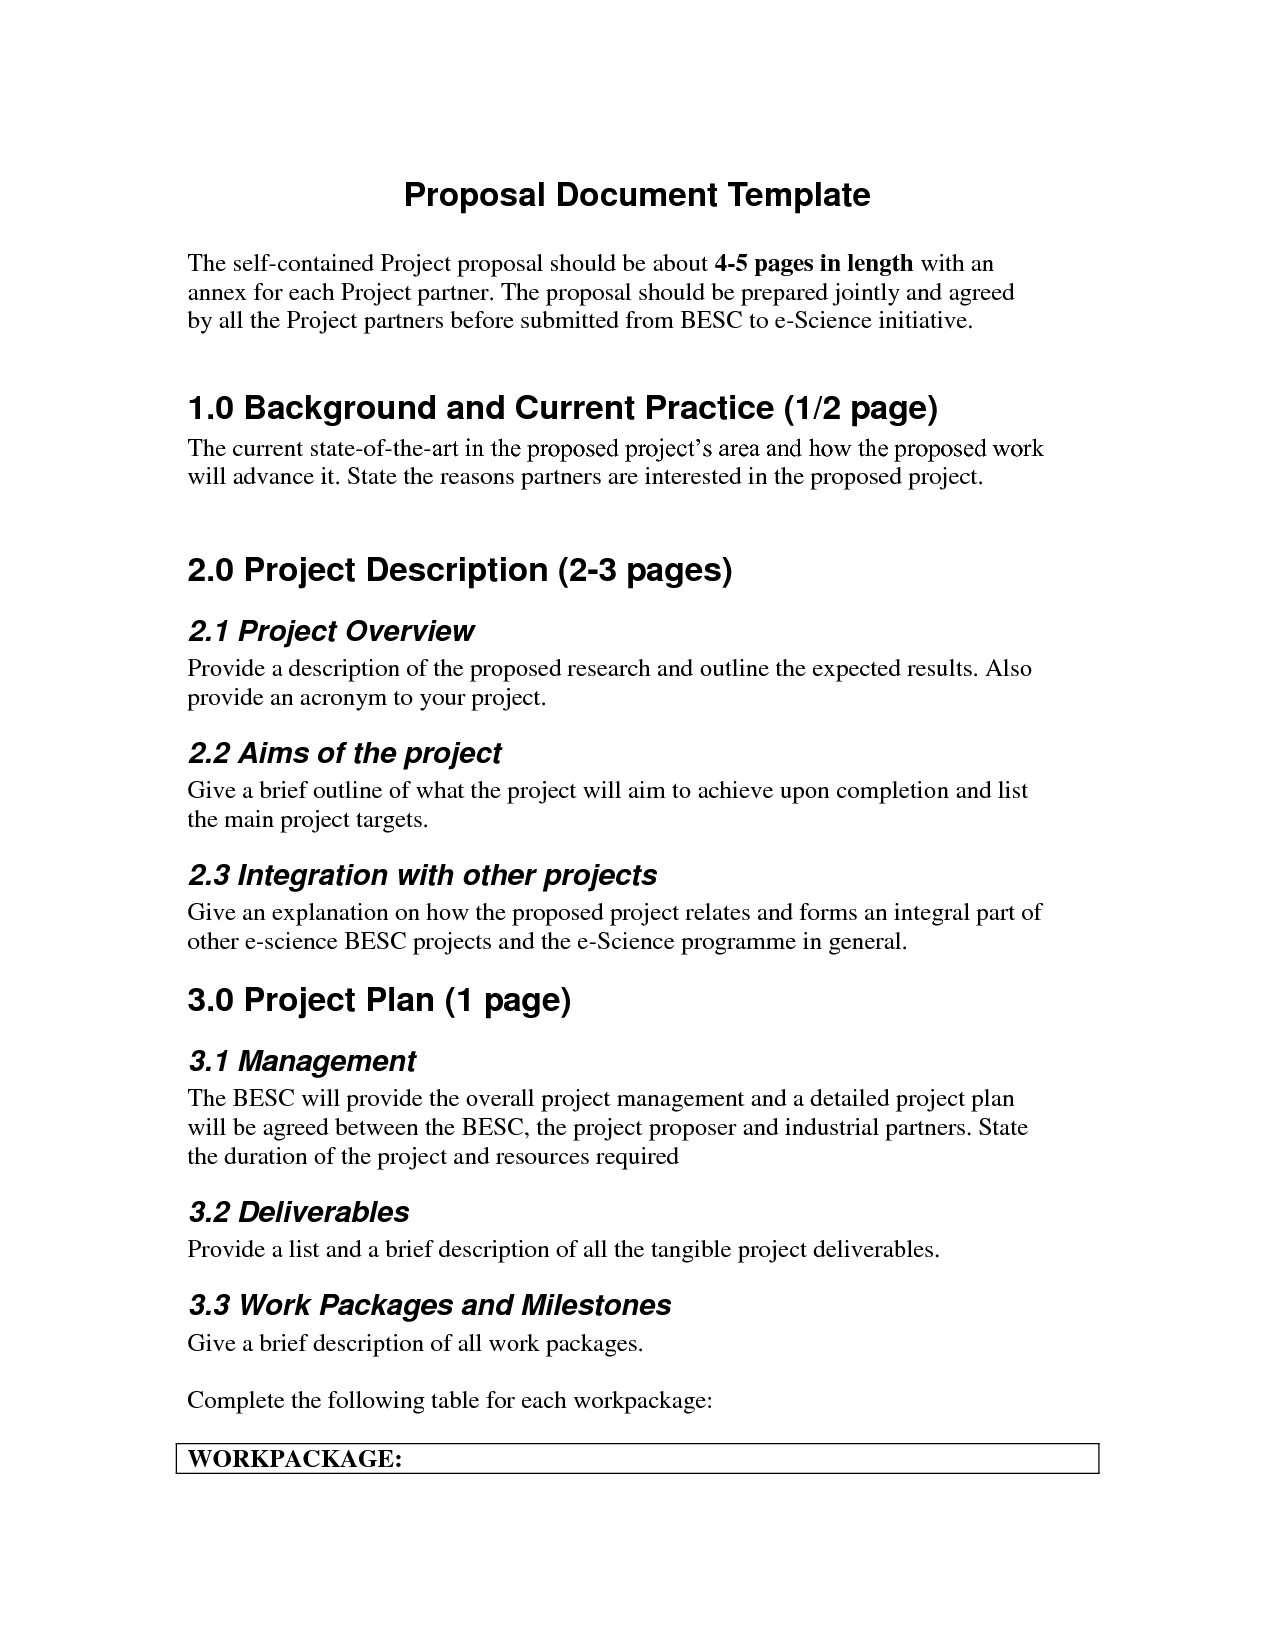 Persuasive Essay Topics Ideas Essay Proposal Template Proposal Essay Topics Before Students Write A  College Research Paper Romeo And Juliet Essay Conclusion also Argumentative Essay On Animal Rights Essay Proposal Template Proposal Essay Topics Before Students  Essay On Good Manners